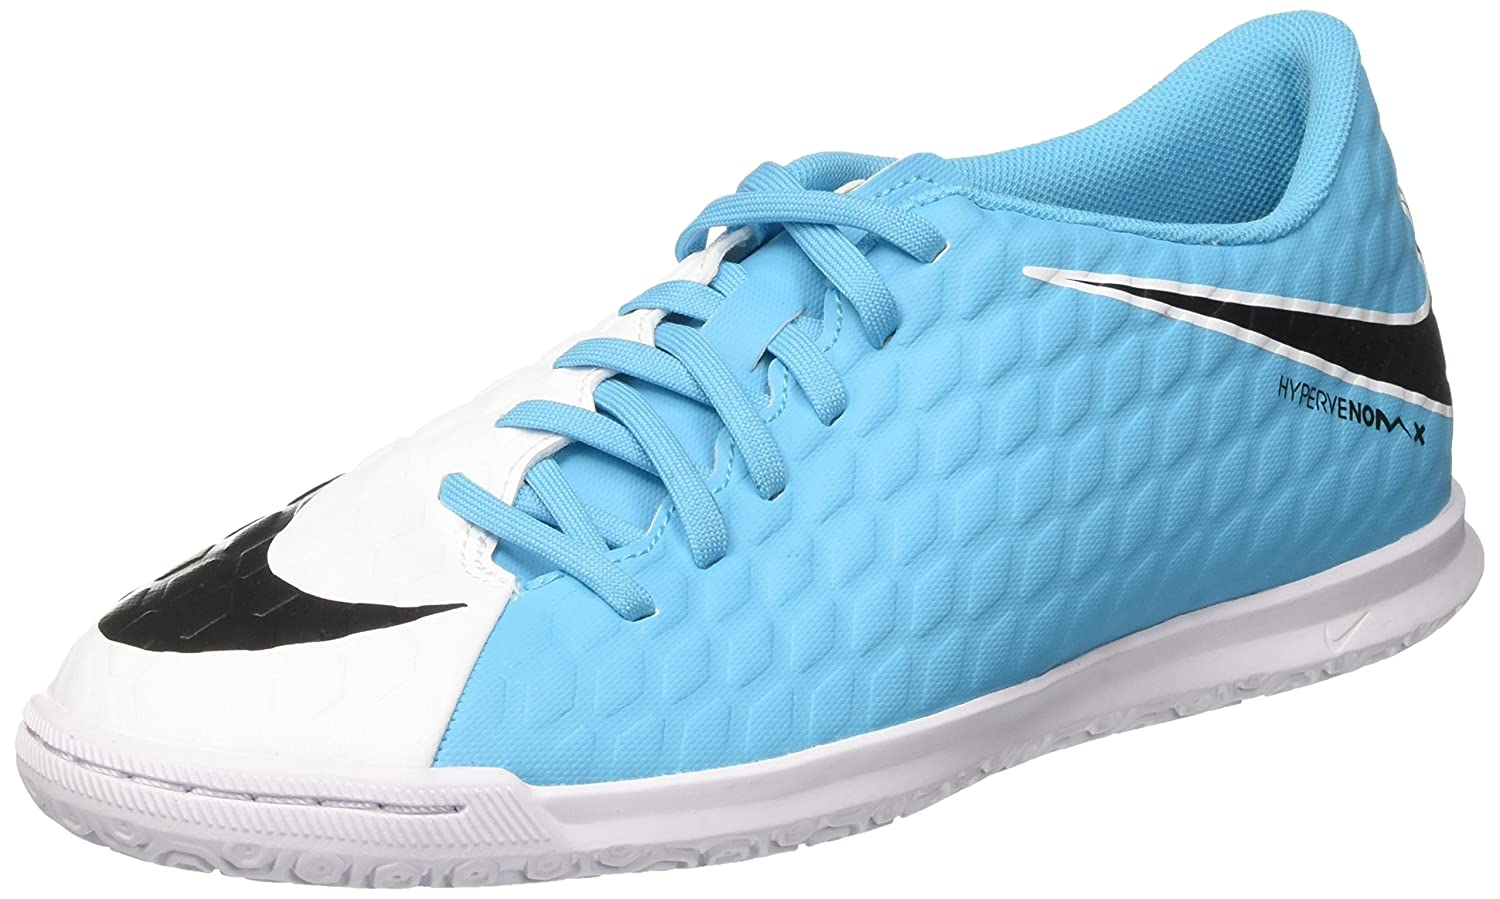 NIKE Hypervenomx Phade III IC Mens Indoor Competition Football Boots 852543 Soccer Cleats B005V2VR72 10.5 D(M) US White Black Photo Blue 104